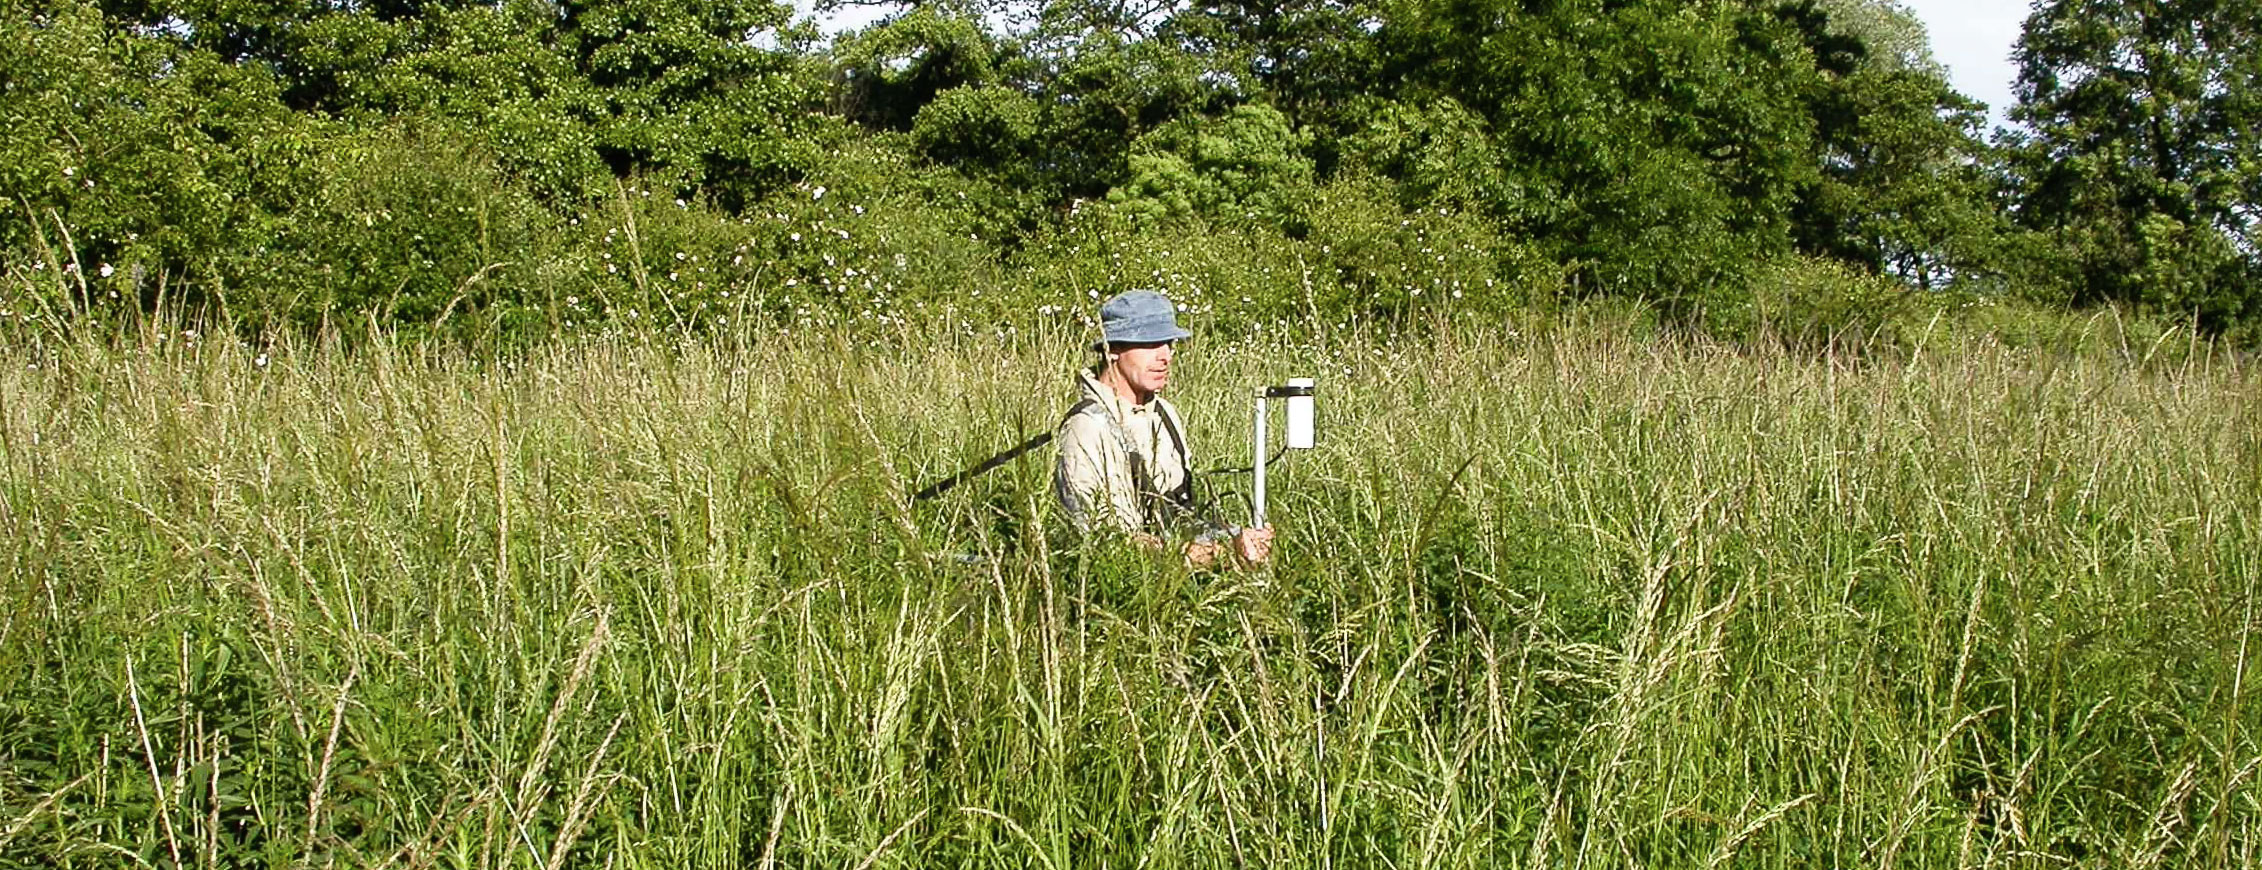 Magnetic gradiometer survey for unexploded ordnance